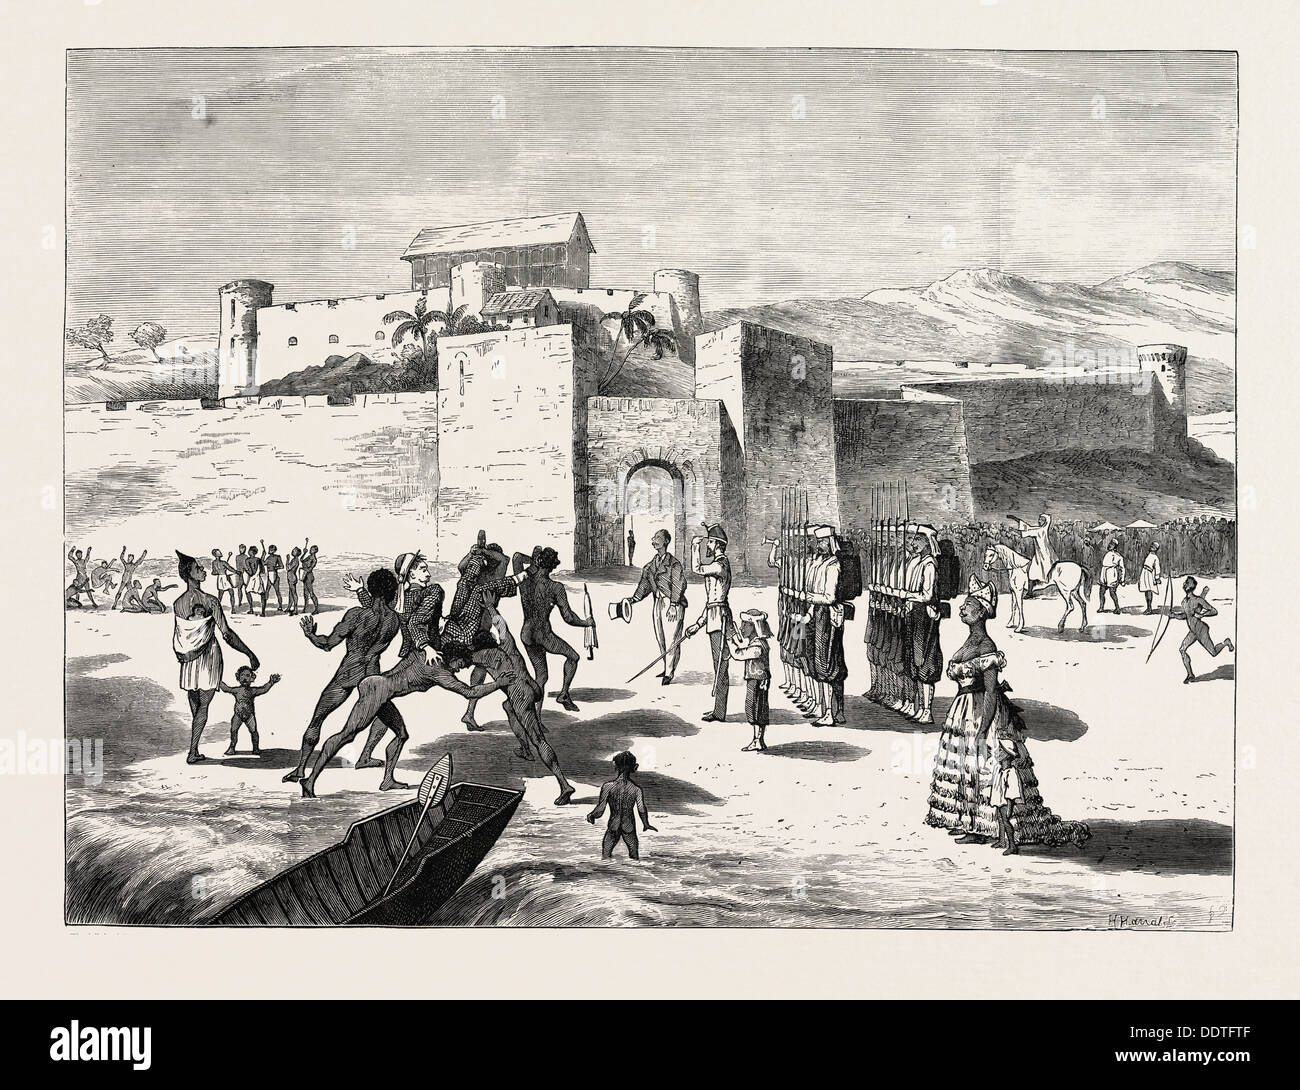 THE ASHANTEE WAR, ARRIVAL OF THE GOVERNOR AT CAPE COAST CASTLE: The delighted Fantees, The Beauty and Fashion, The Tom-Tom Band - Stock Image